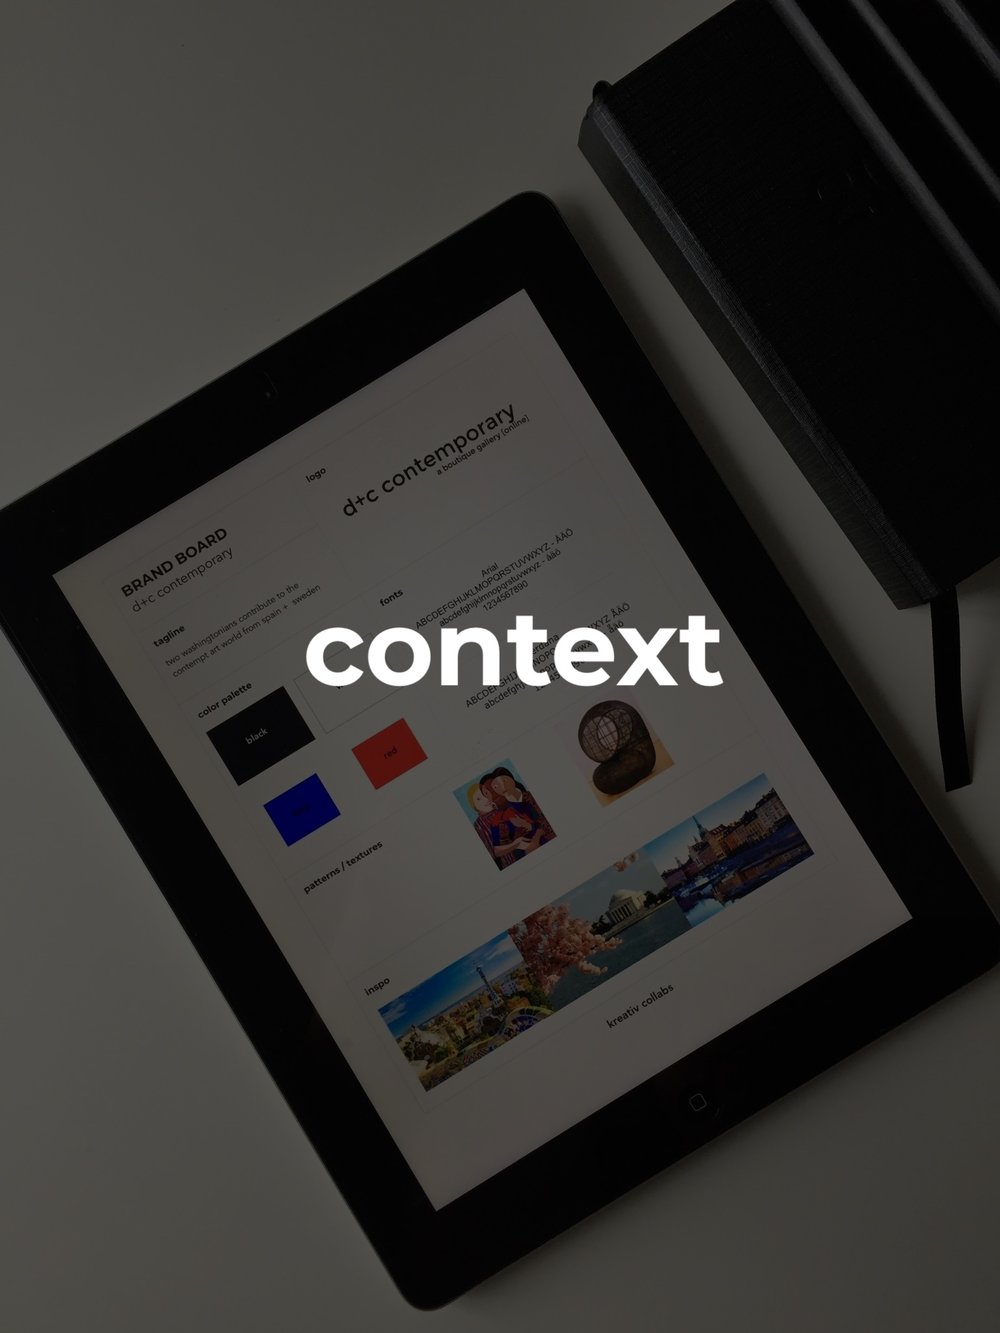 #context   this package takes concept to the next level and begins to really understand the brand id - it provides more creative direction and basic marketing suggestions.